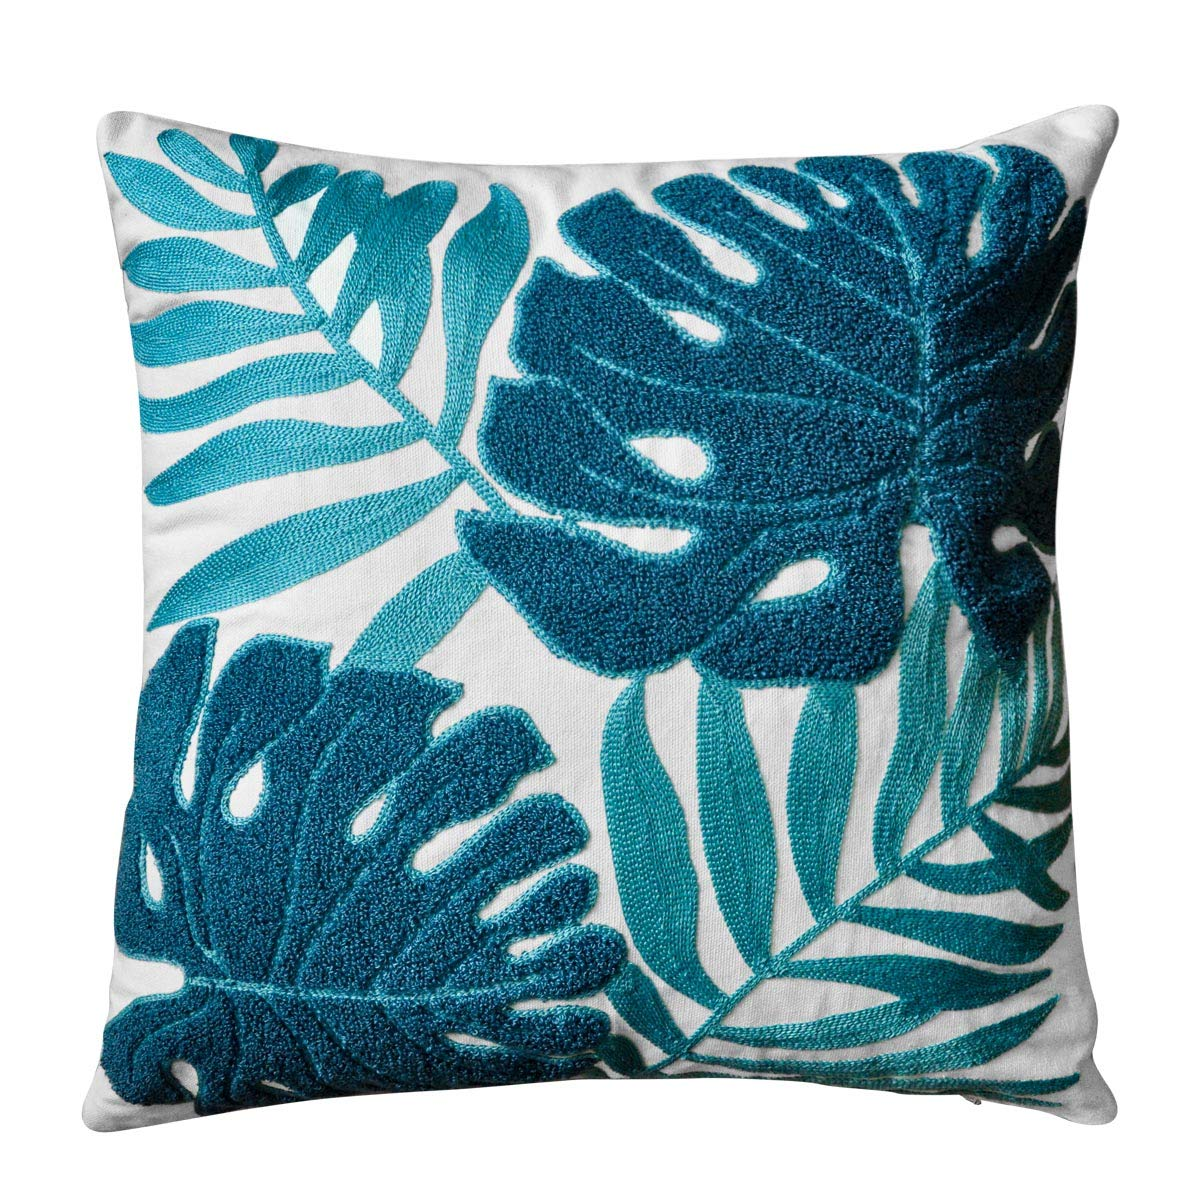 Mulzeart Cotton Embroidery Tropical Leaf Palm Pattern Throw Pillow Covers,  Woven Comfy Decorative Pillows Covers Cushion Case for Couch Sofa Bedroom  ...